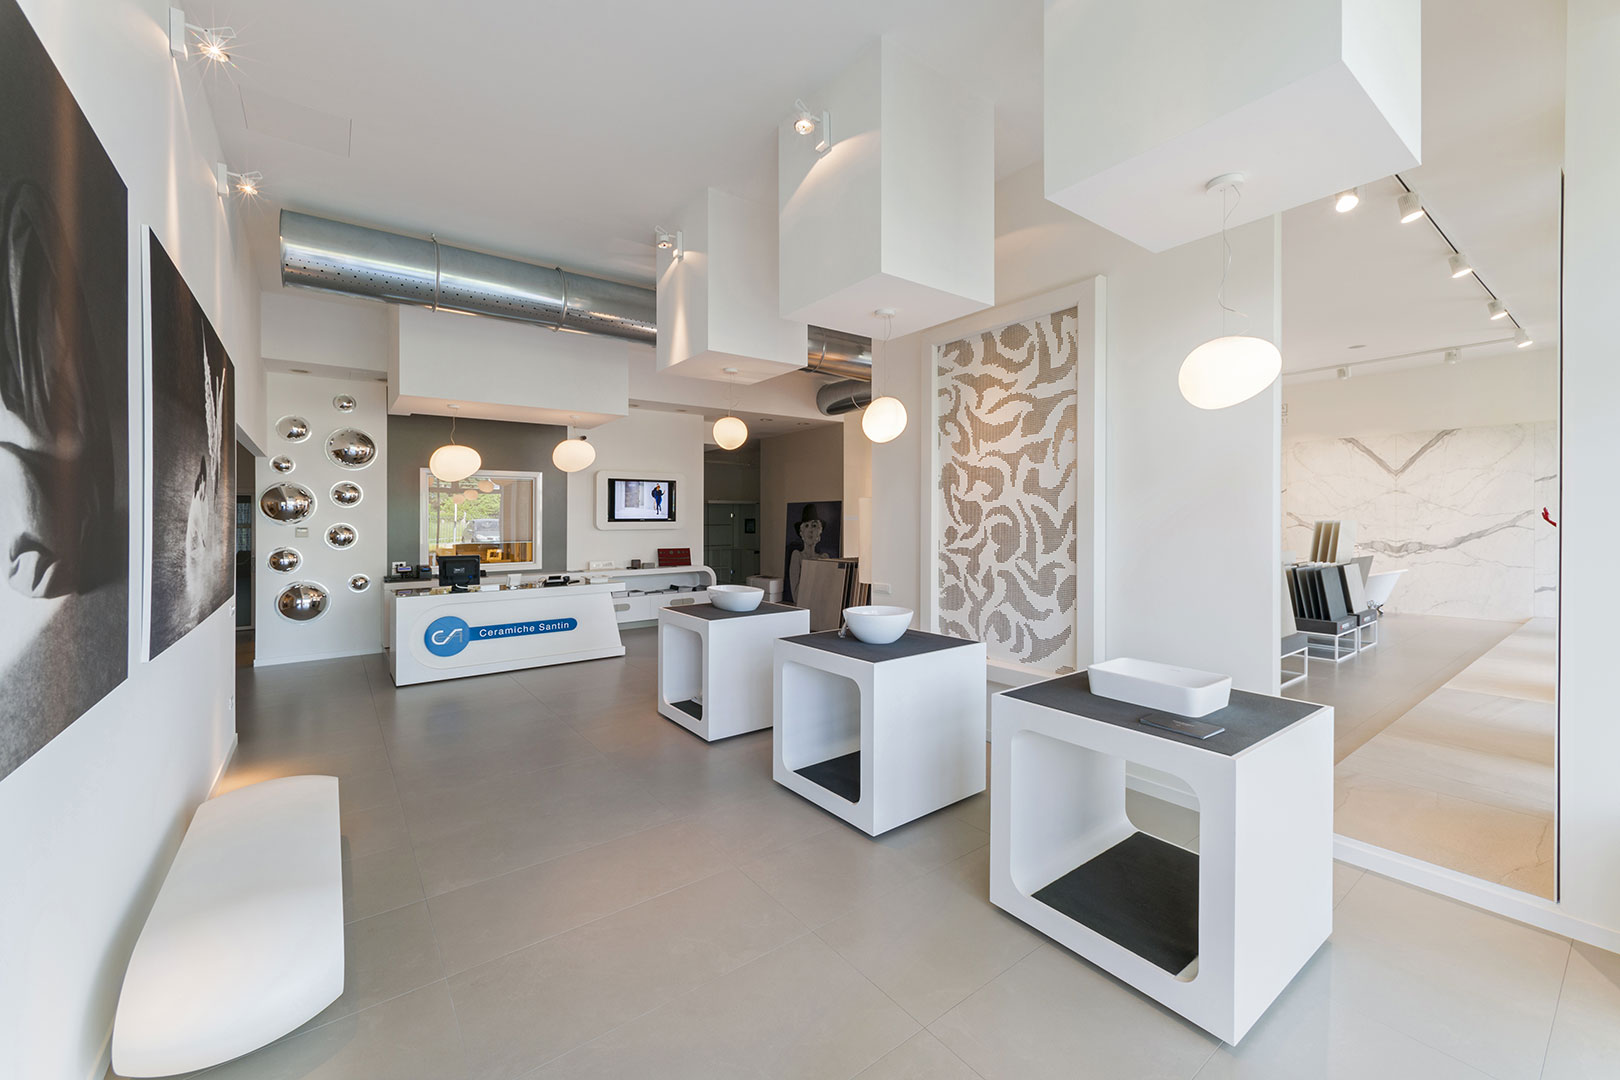 showroom sanitari milano raccordi tubi innocenti